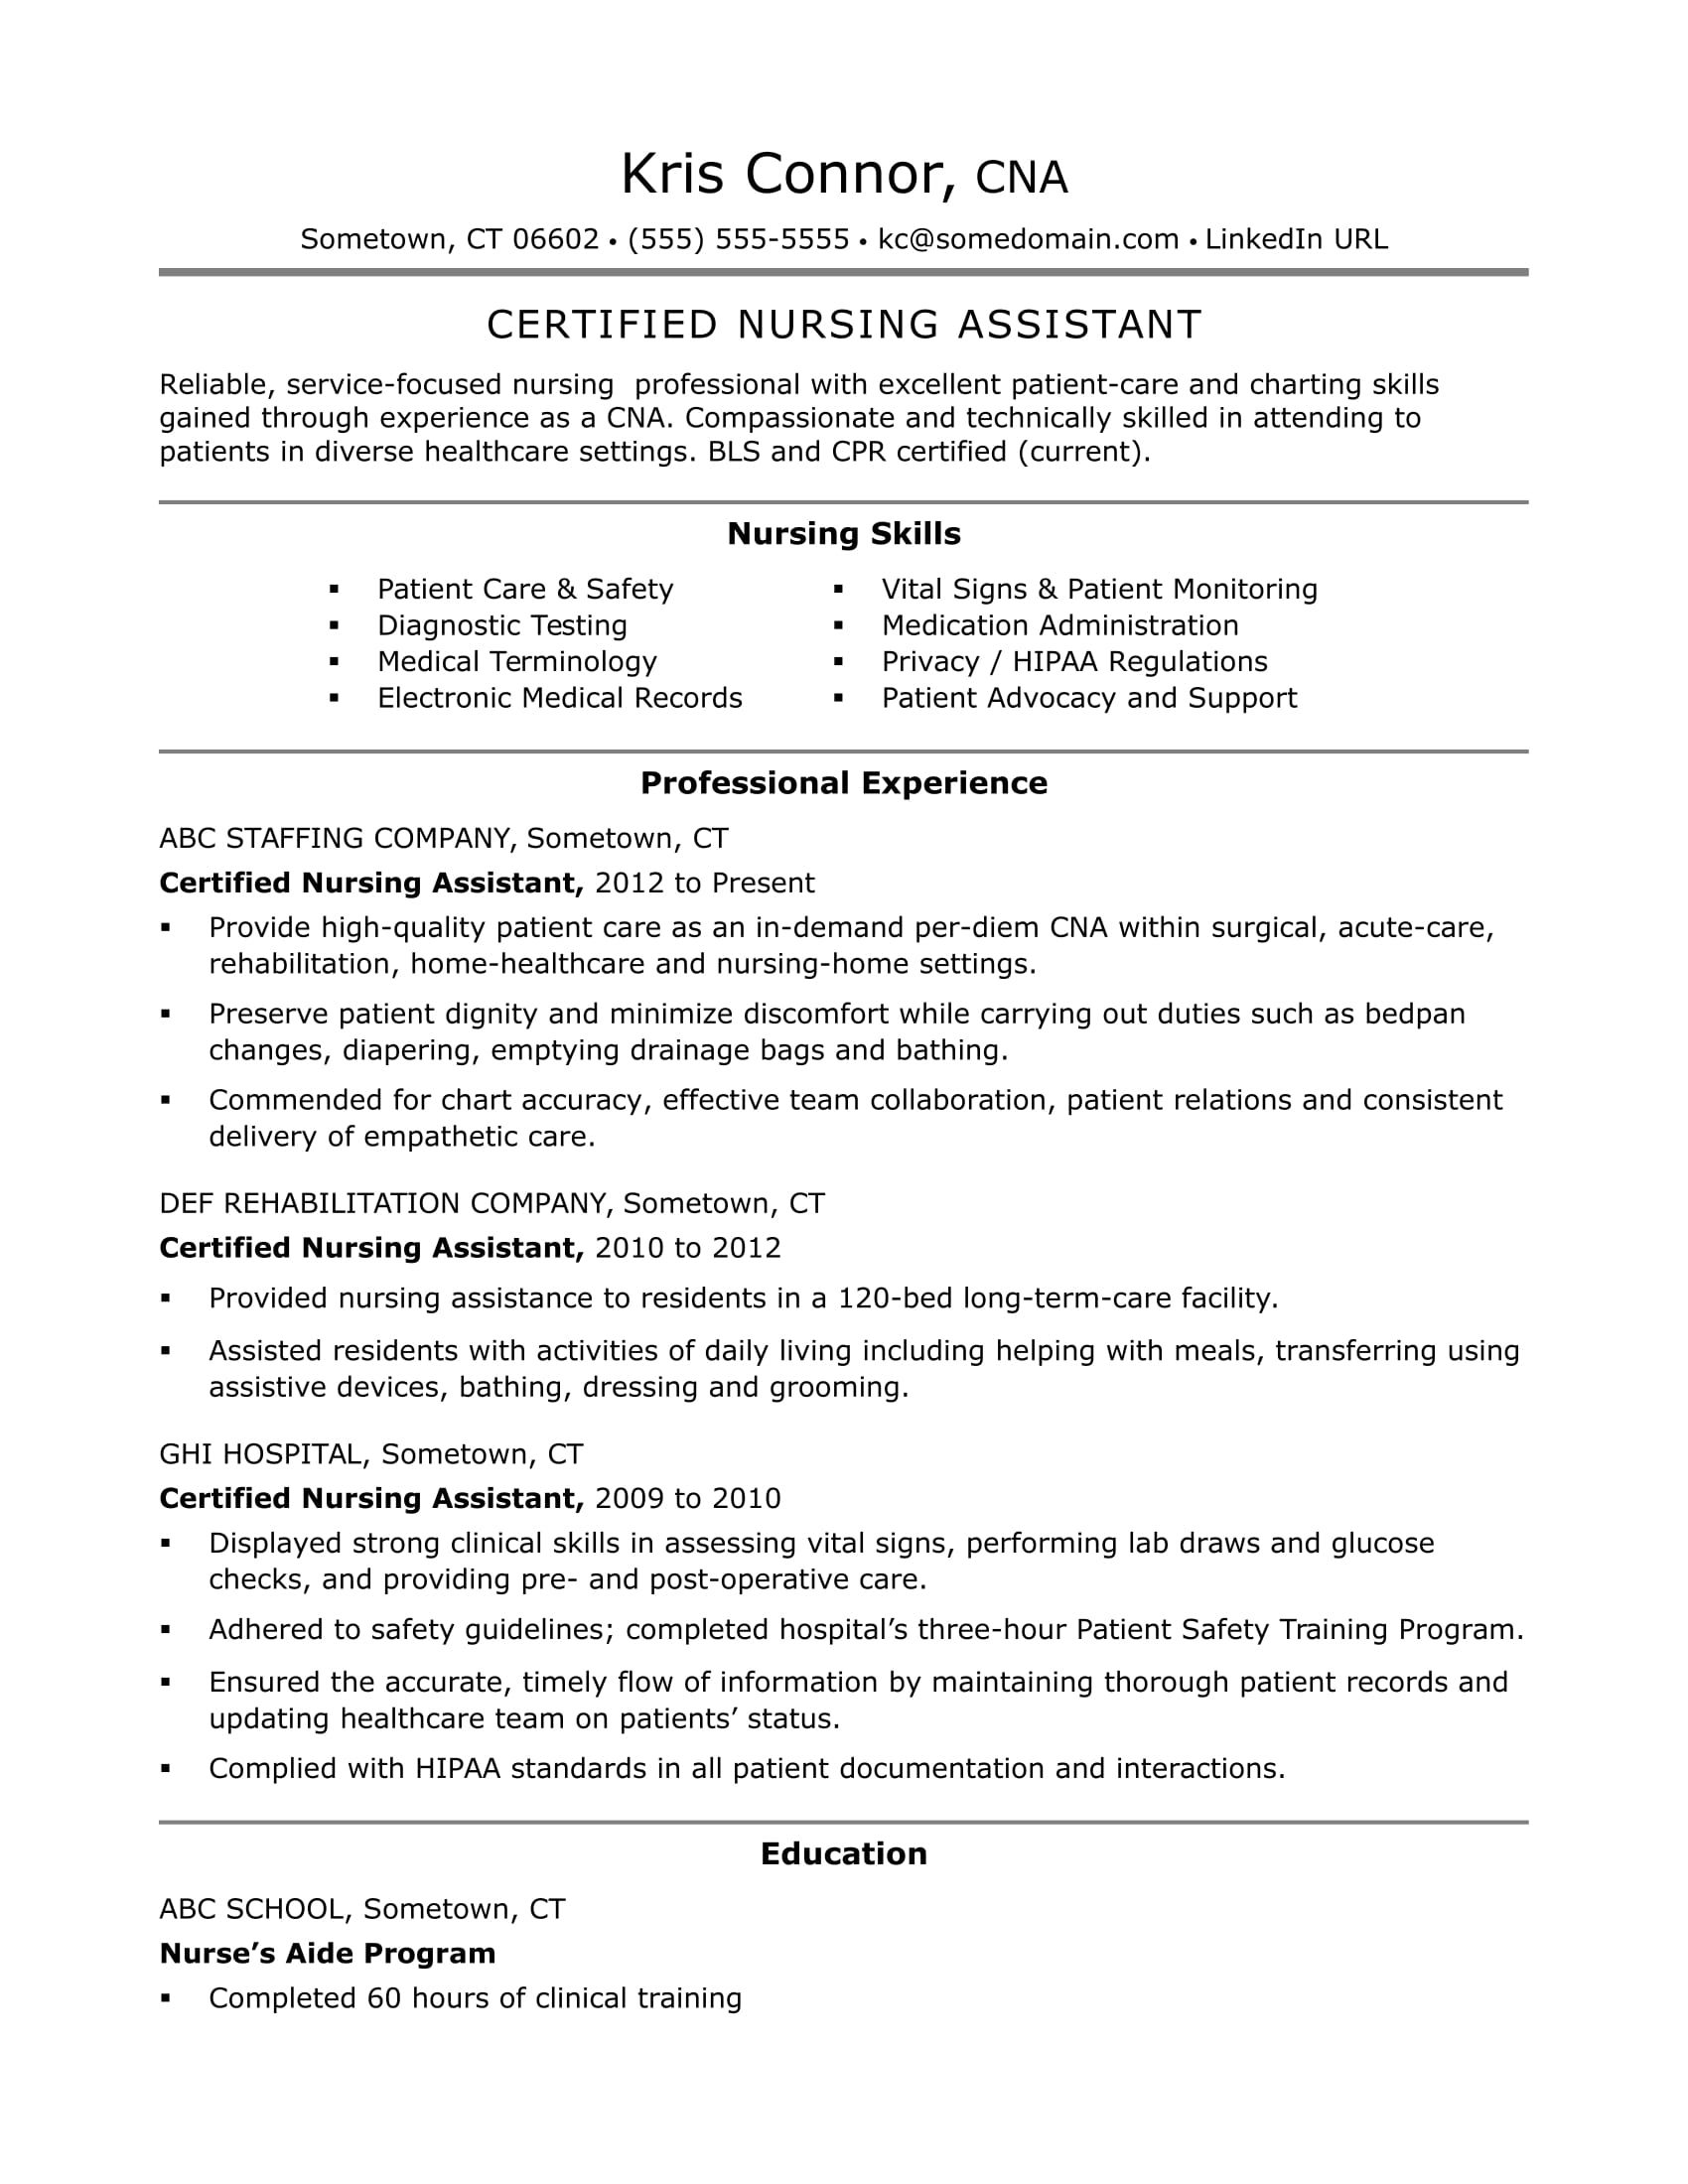 CNA Resume Examples Skills For CNAs Monstercom - Sample resume for nurses skills